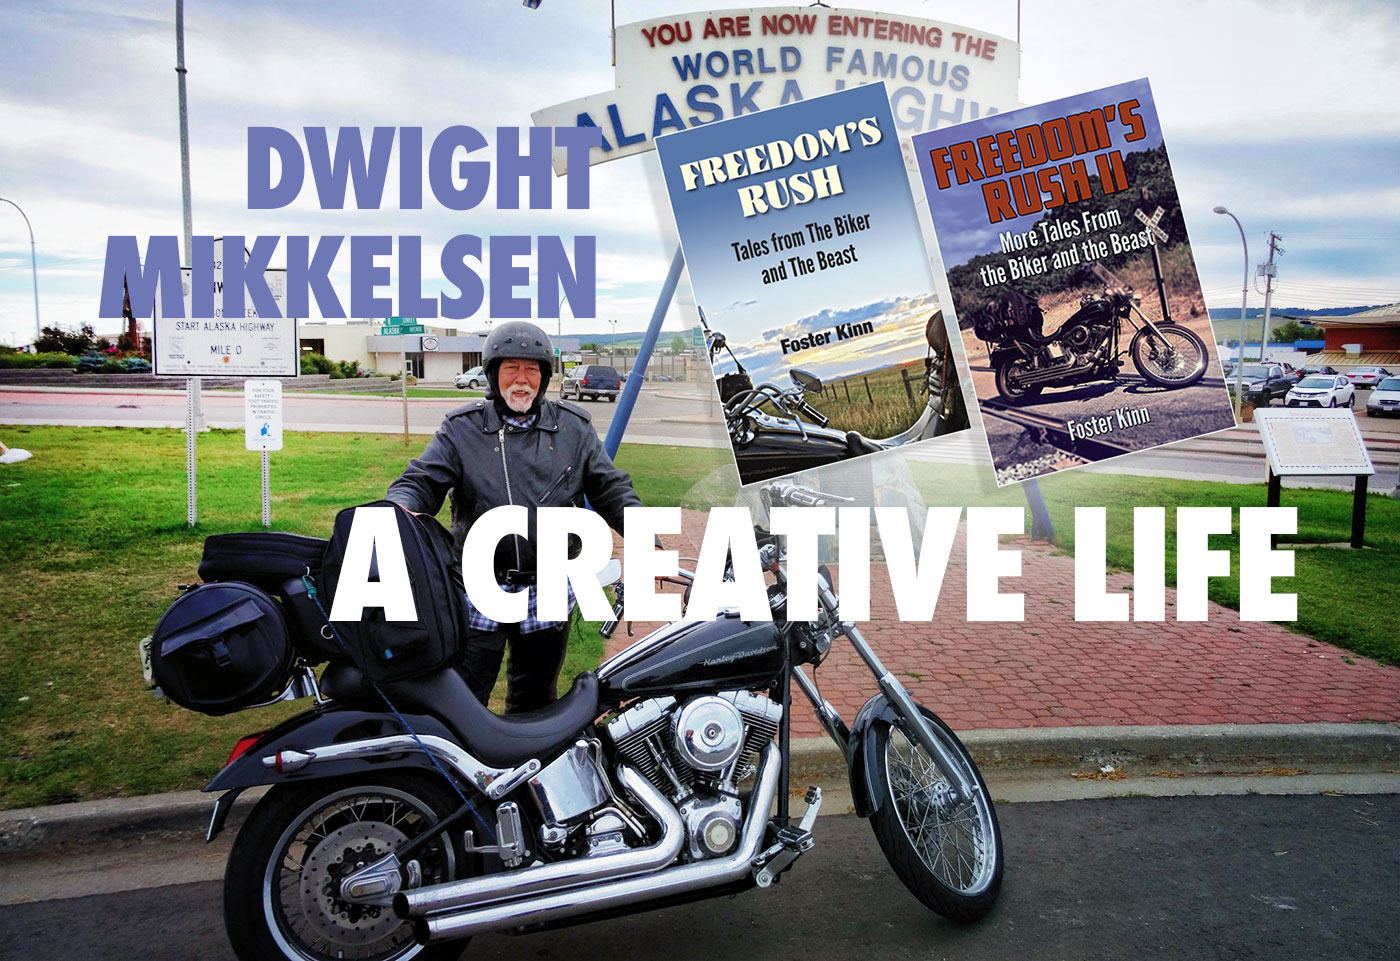 Meet Dwight Mikkelsen: A Creative Life